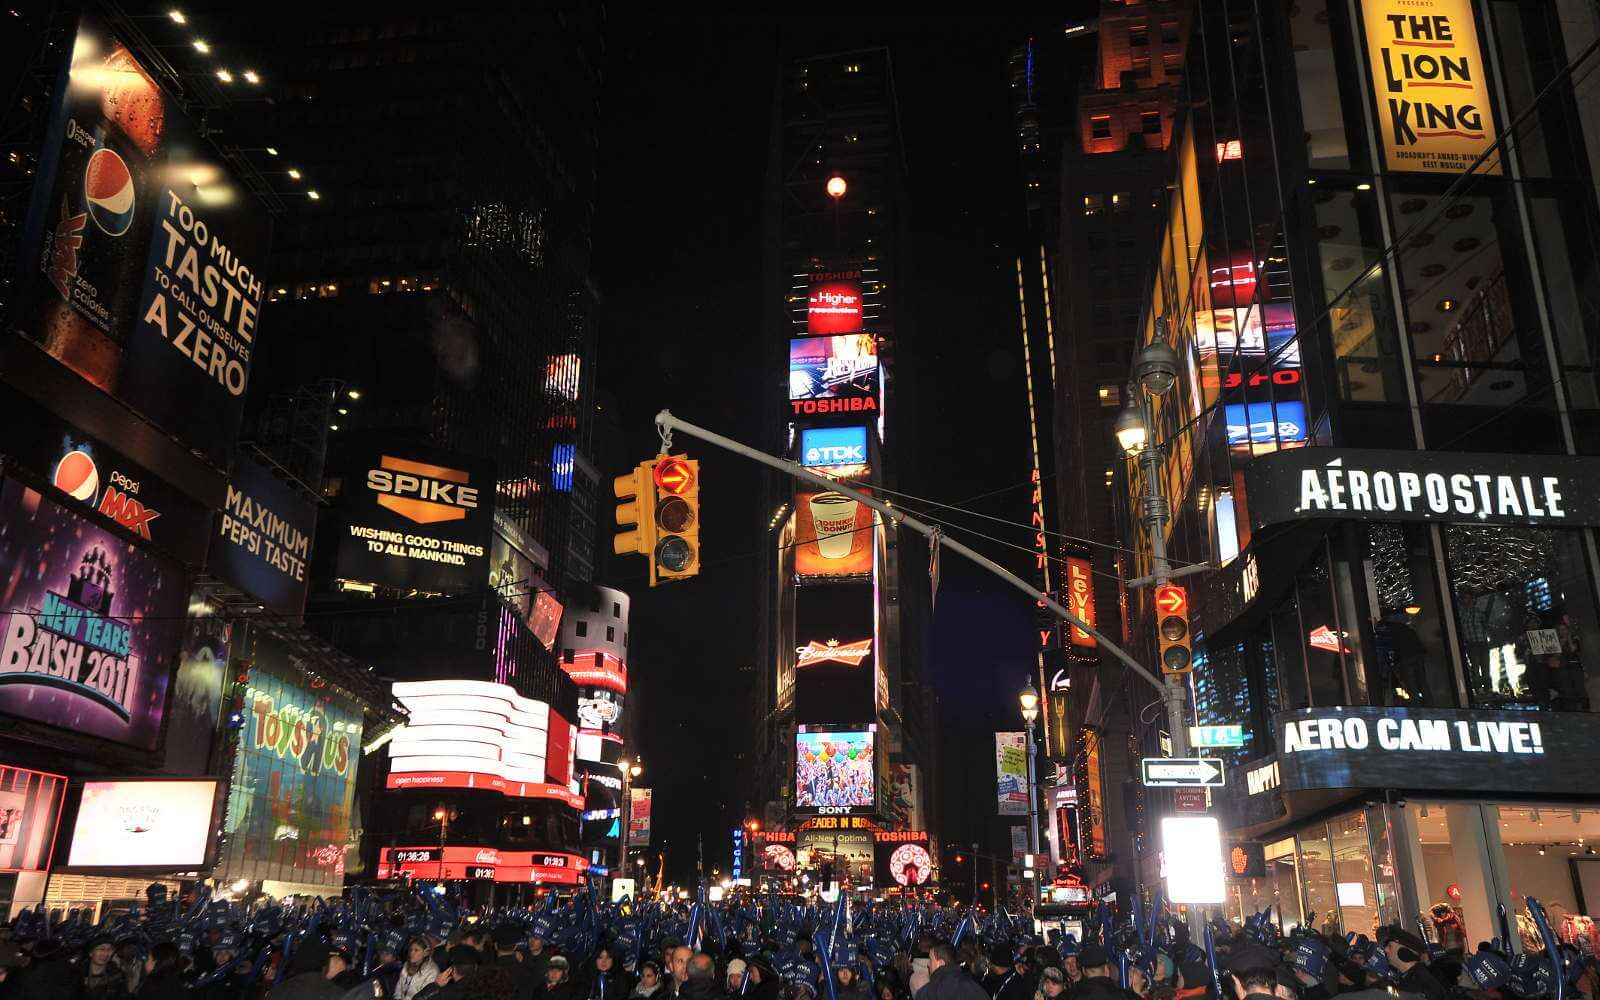 Silvester in Übersee_Silvester am Time Square von asterix611